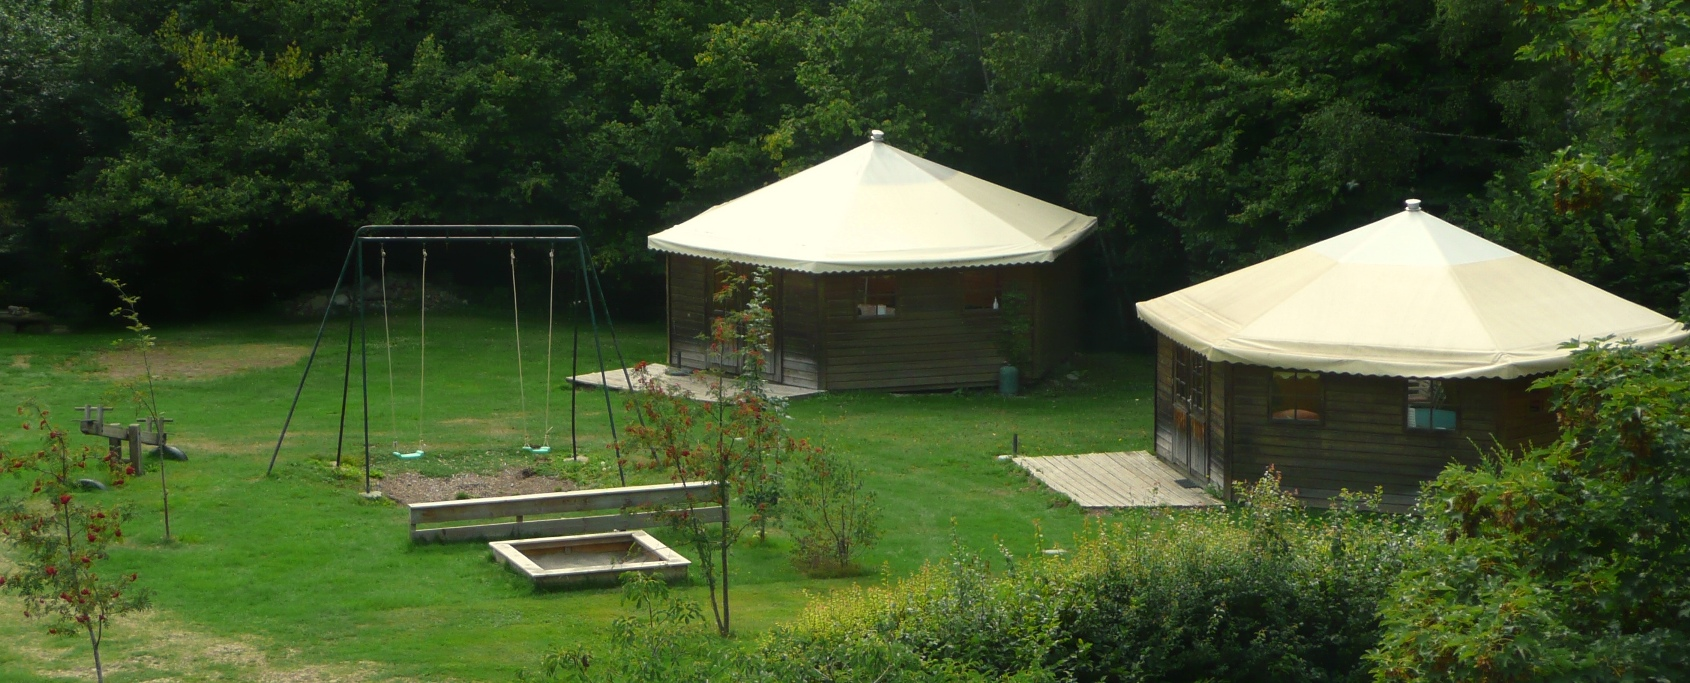 Wooden Yurts